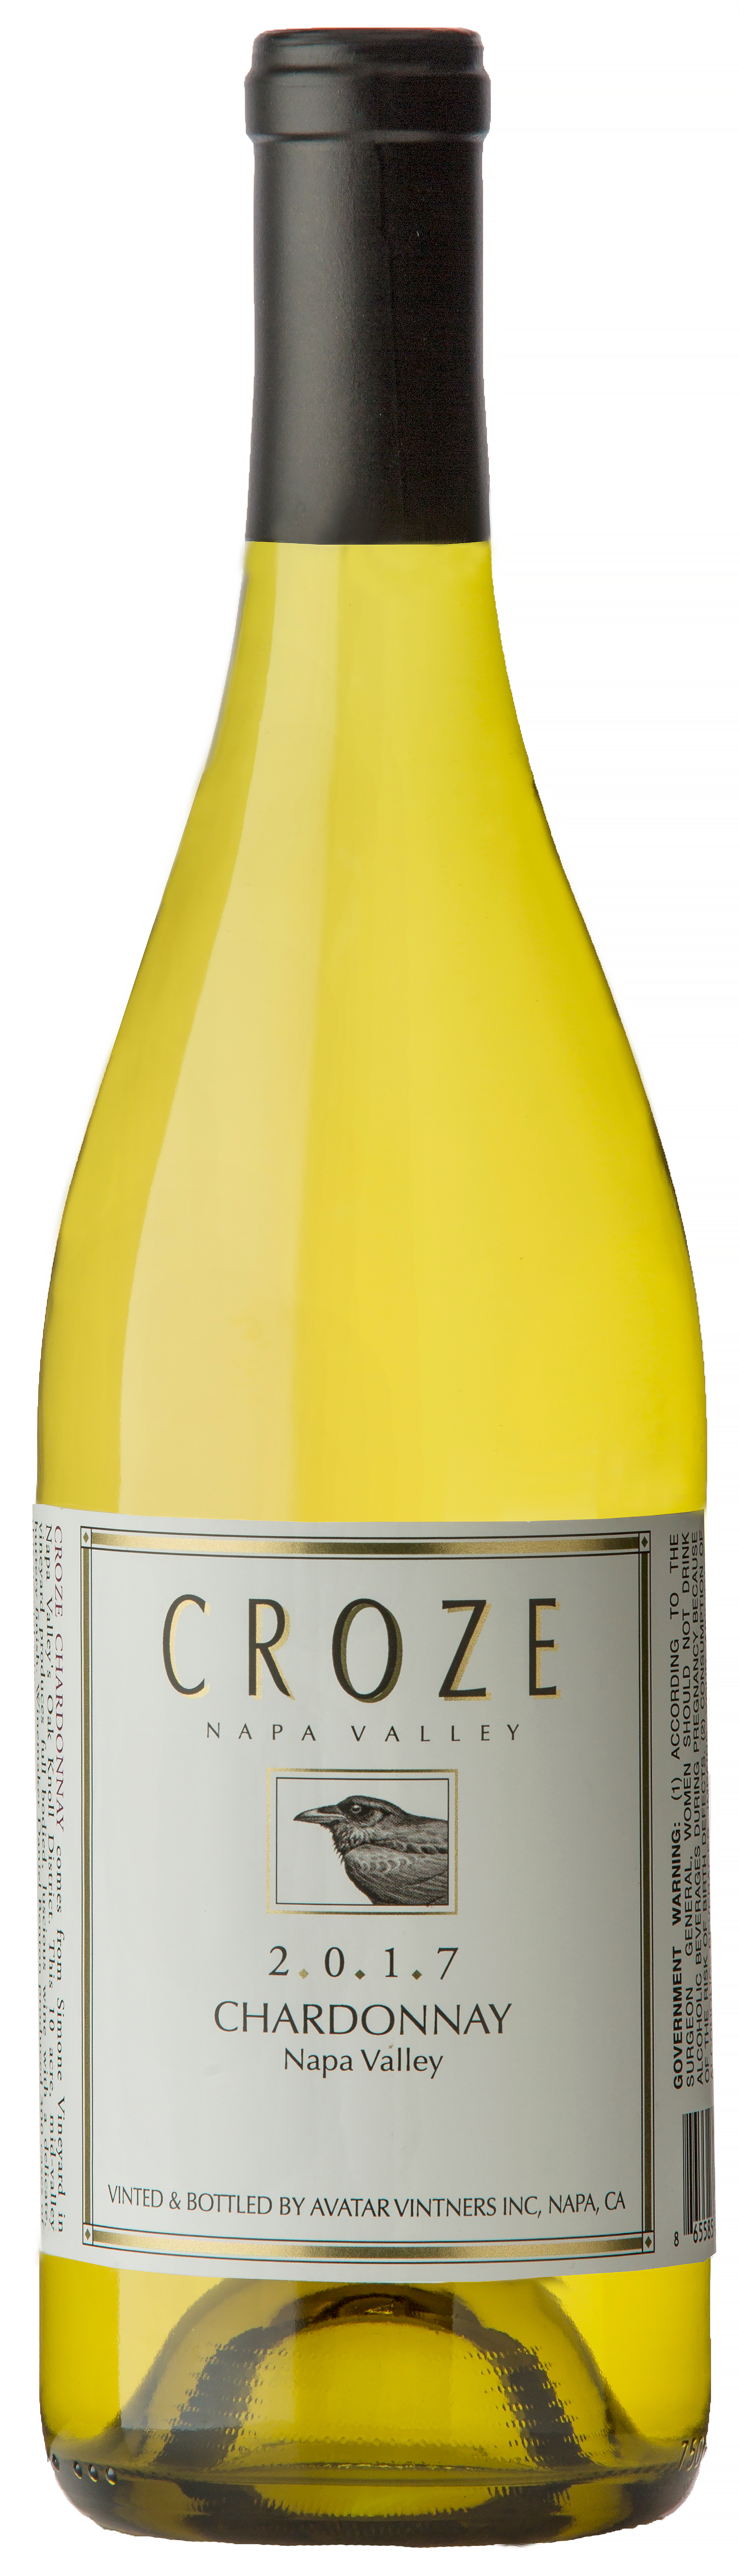 Product Image for 2017 Croze Chardonnay, Napa Valley